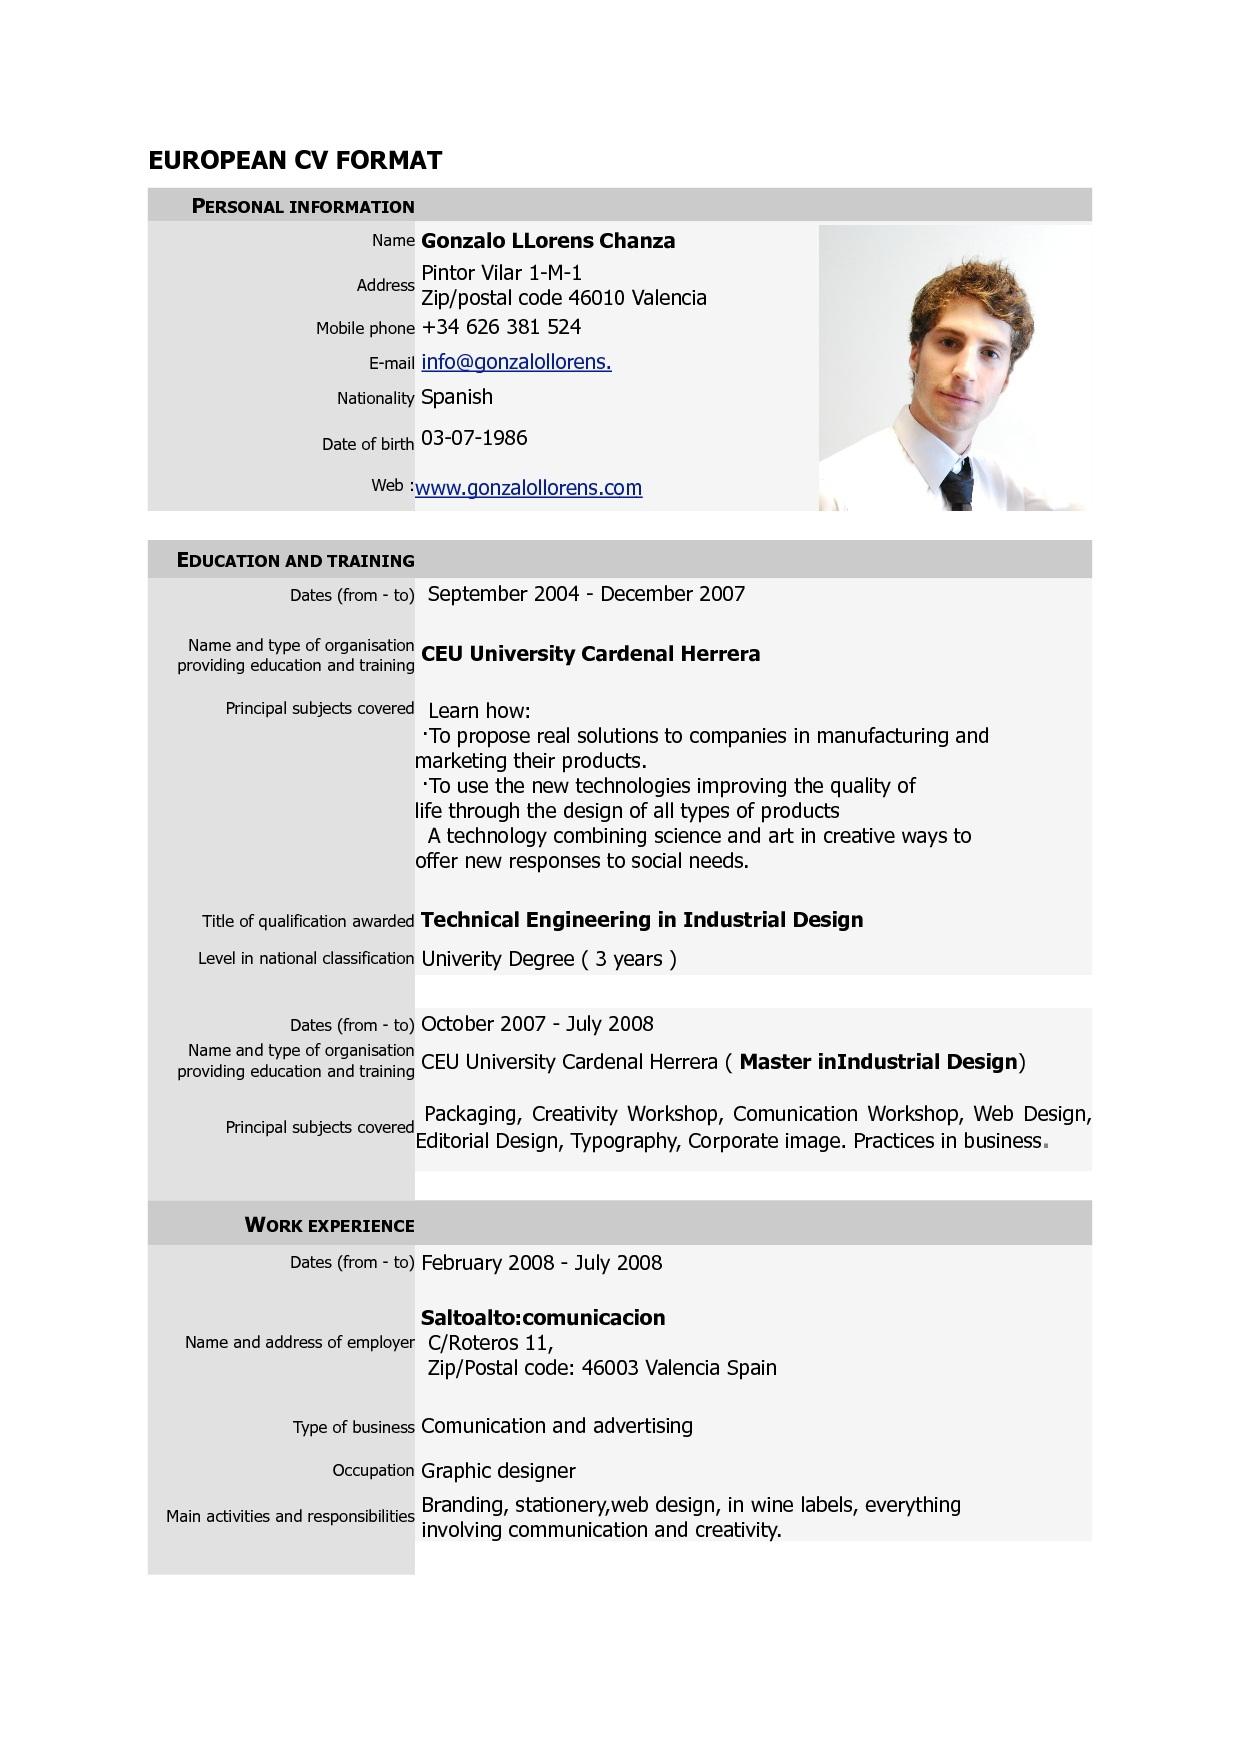 Examples Of Resumes : Professional Resume Format Tdelight 2135301